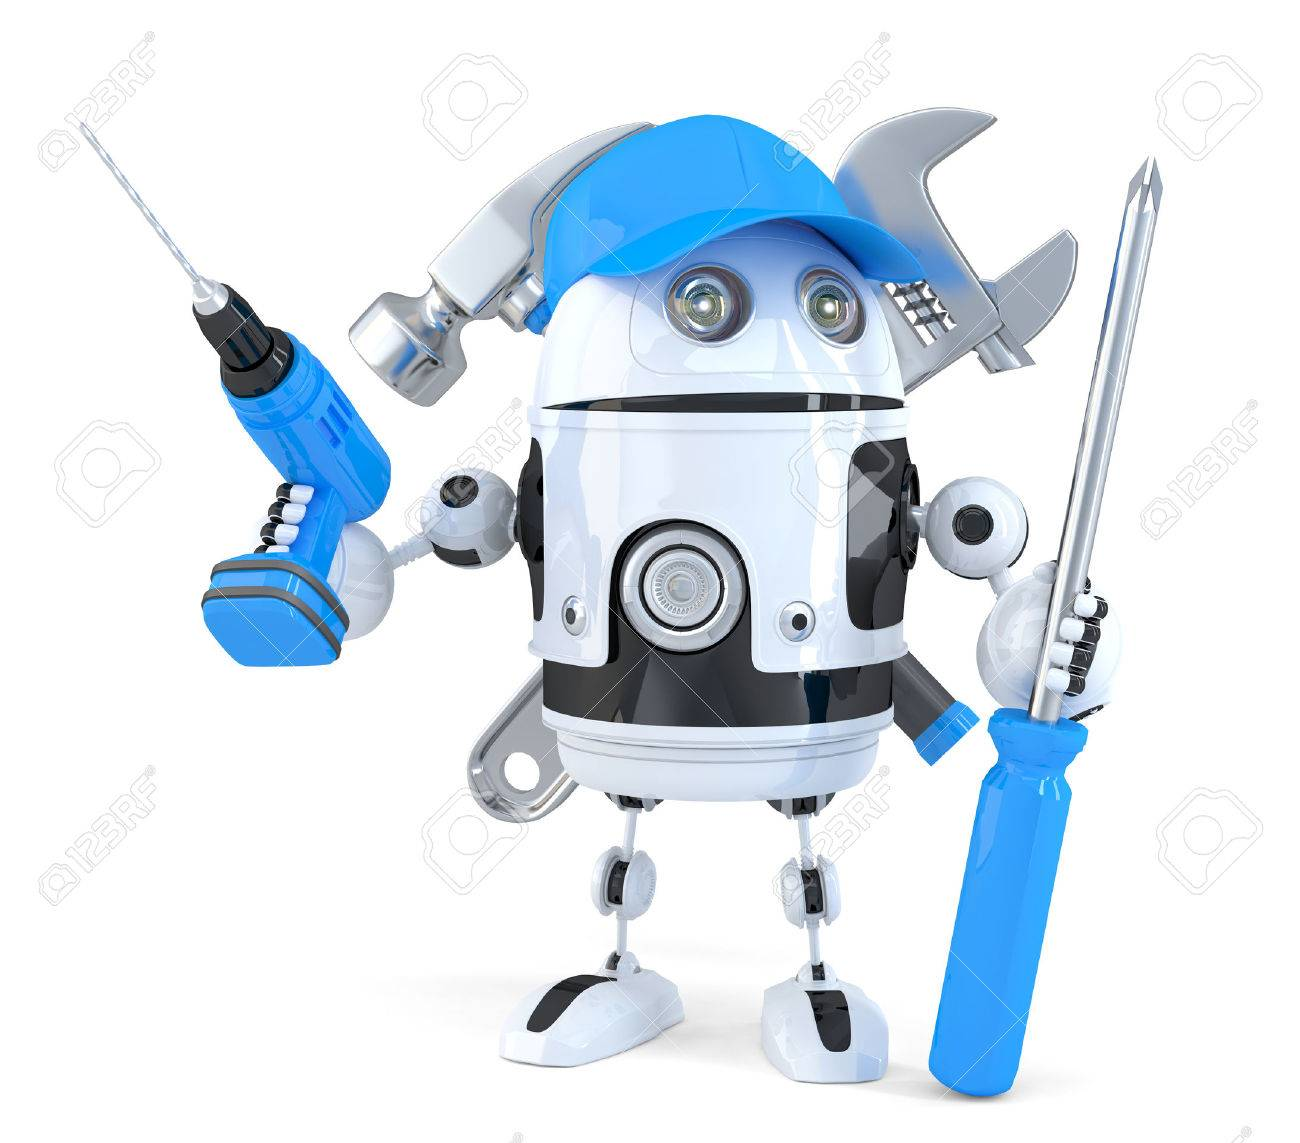 Robot with various tools. Technology concept. Isolated. Contains clipping path Standard-Bild - 40577655